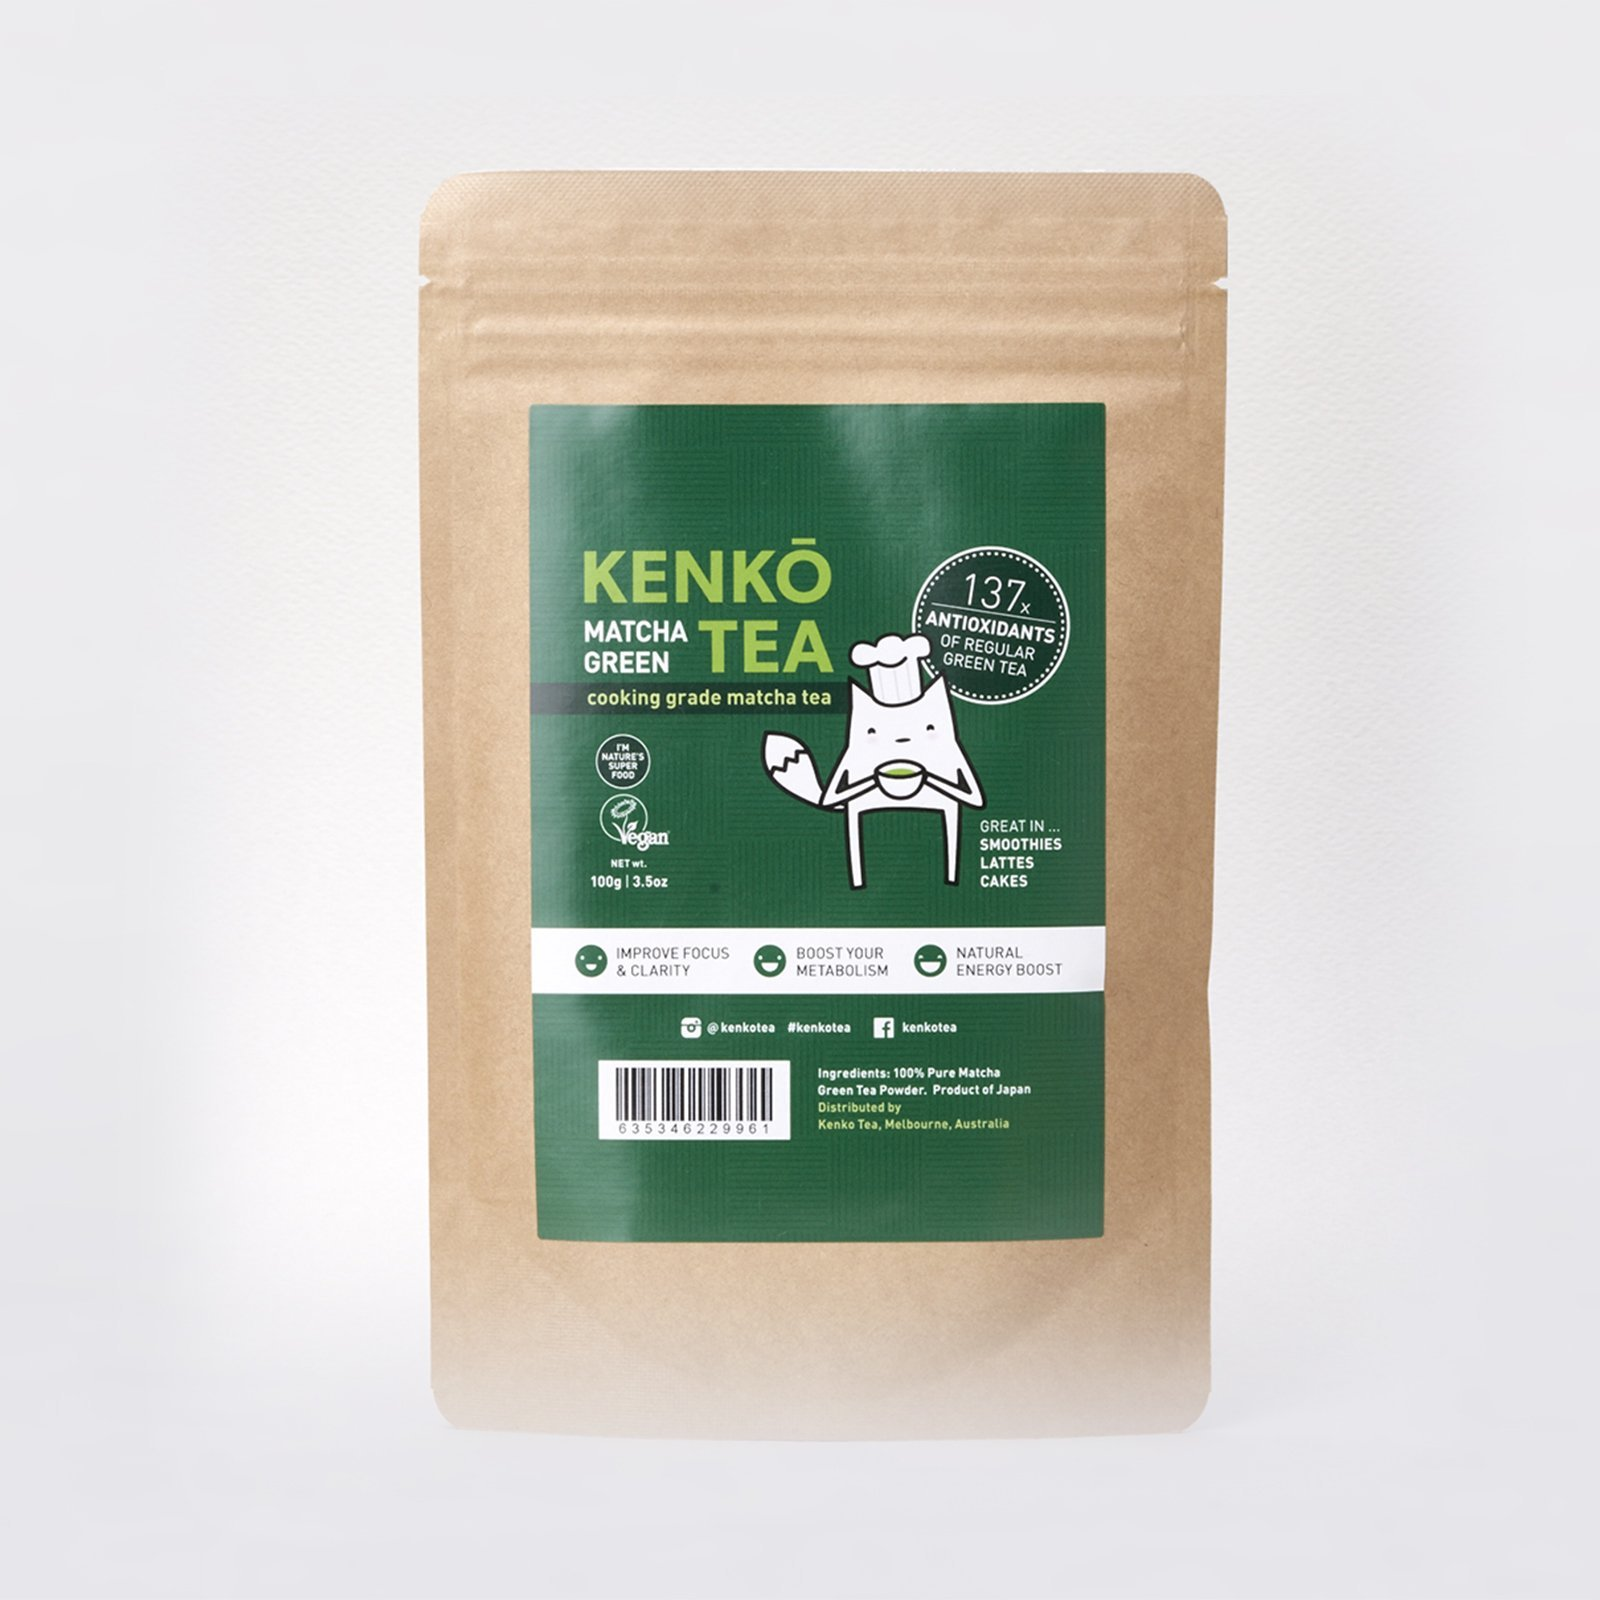 Matcha Green Tea Powder - Premium Japanese by Kenko Tea (Culinary Grade 100g) by Kenko Tea